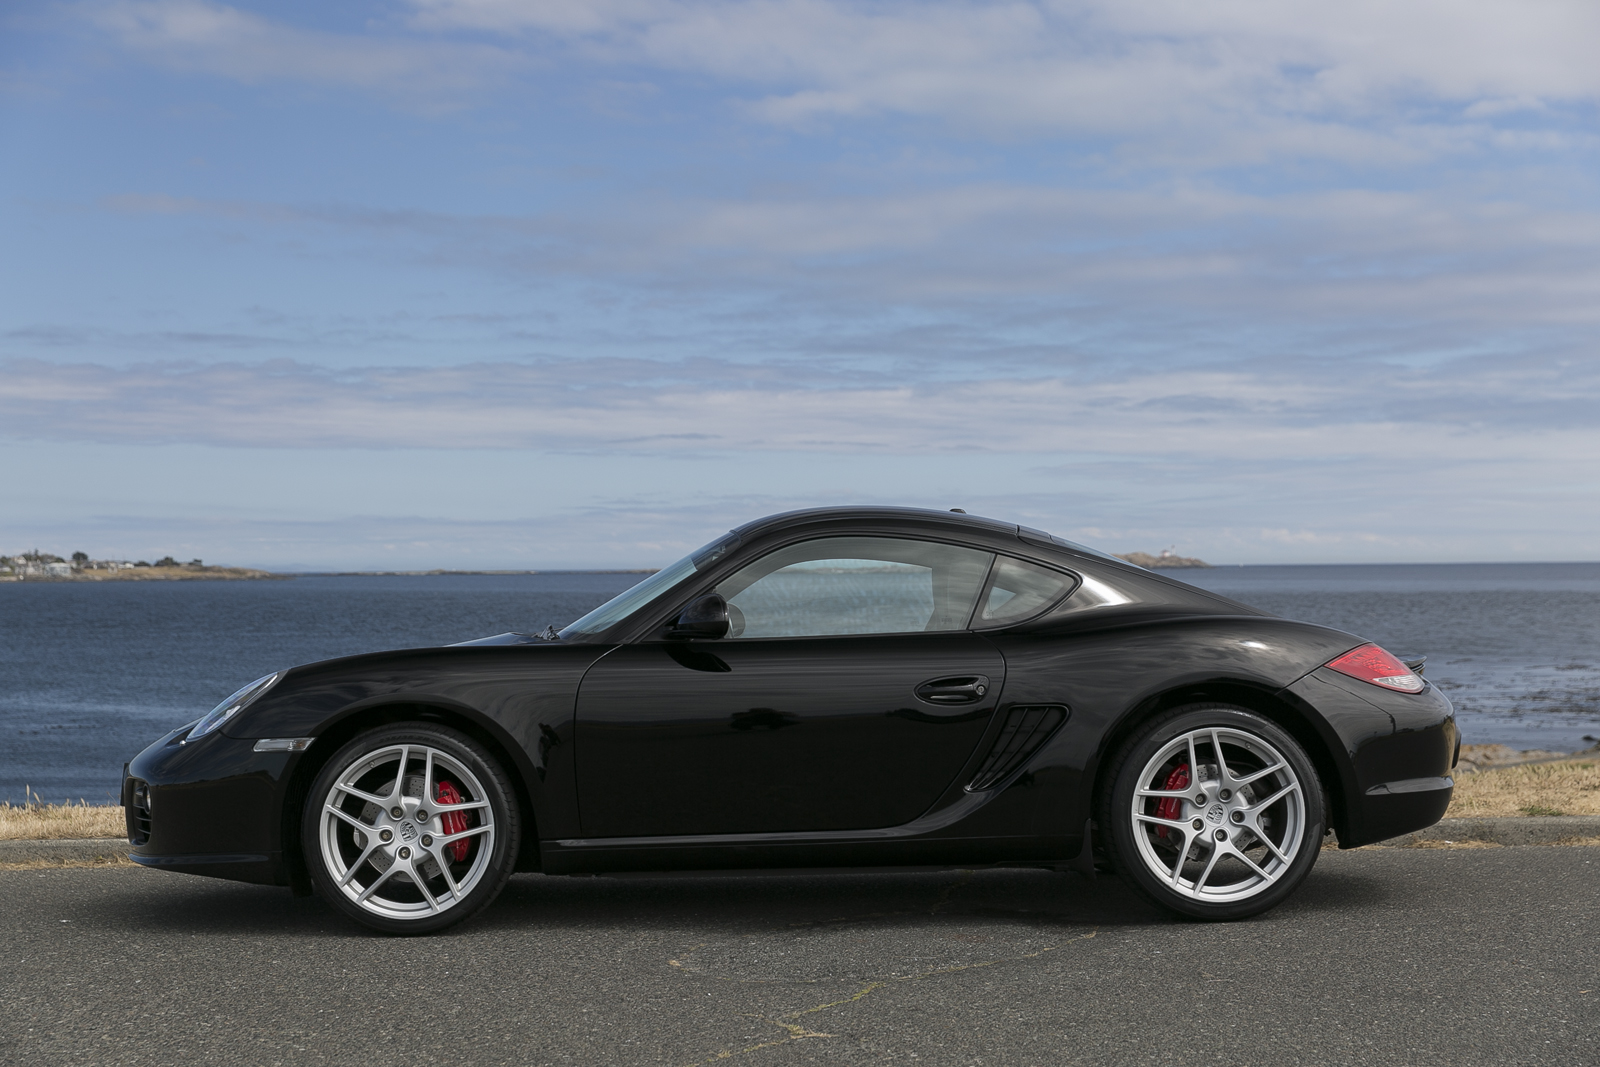 porsche cayman s pdk black on black in victoria bc silver arrow cars. Black Bedroom Furniture Sets. Home Design Ideas